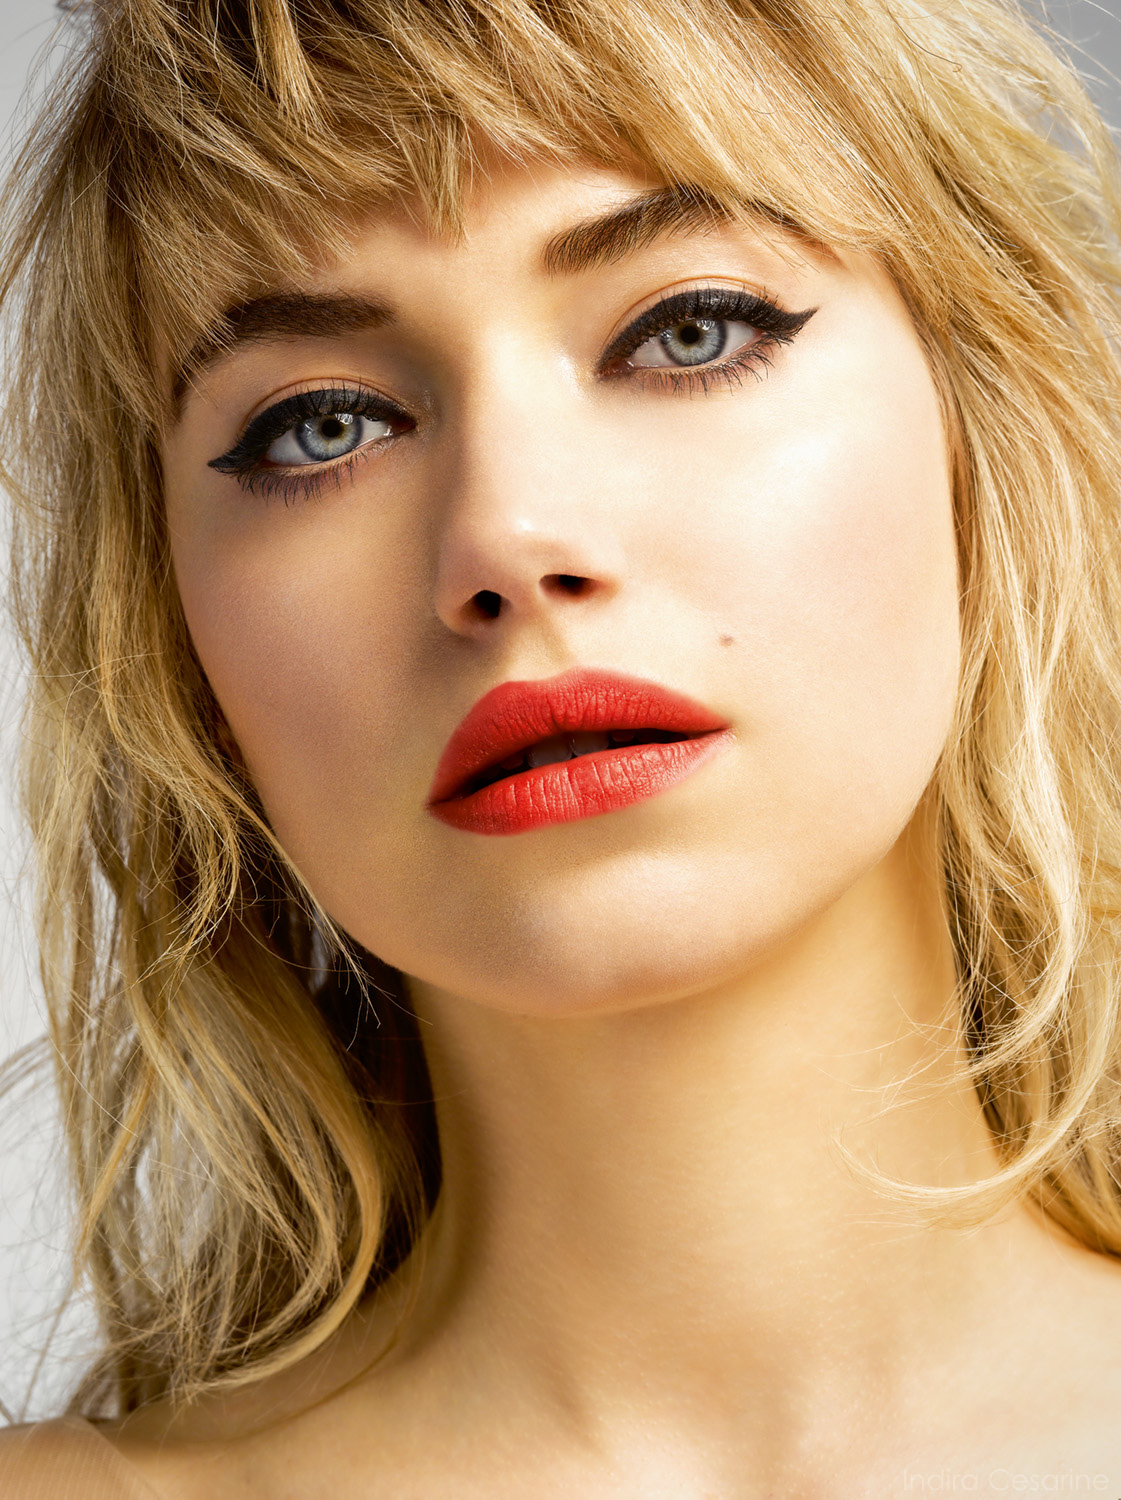 Imogen-Poots-Photography-by-Indira-Cesarine-009.jpg